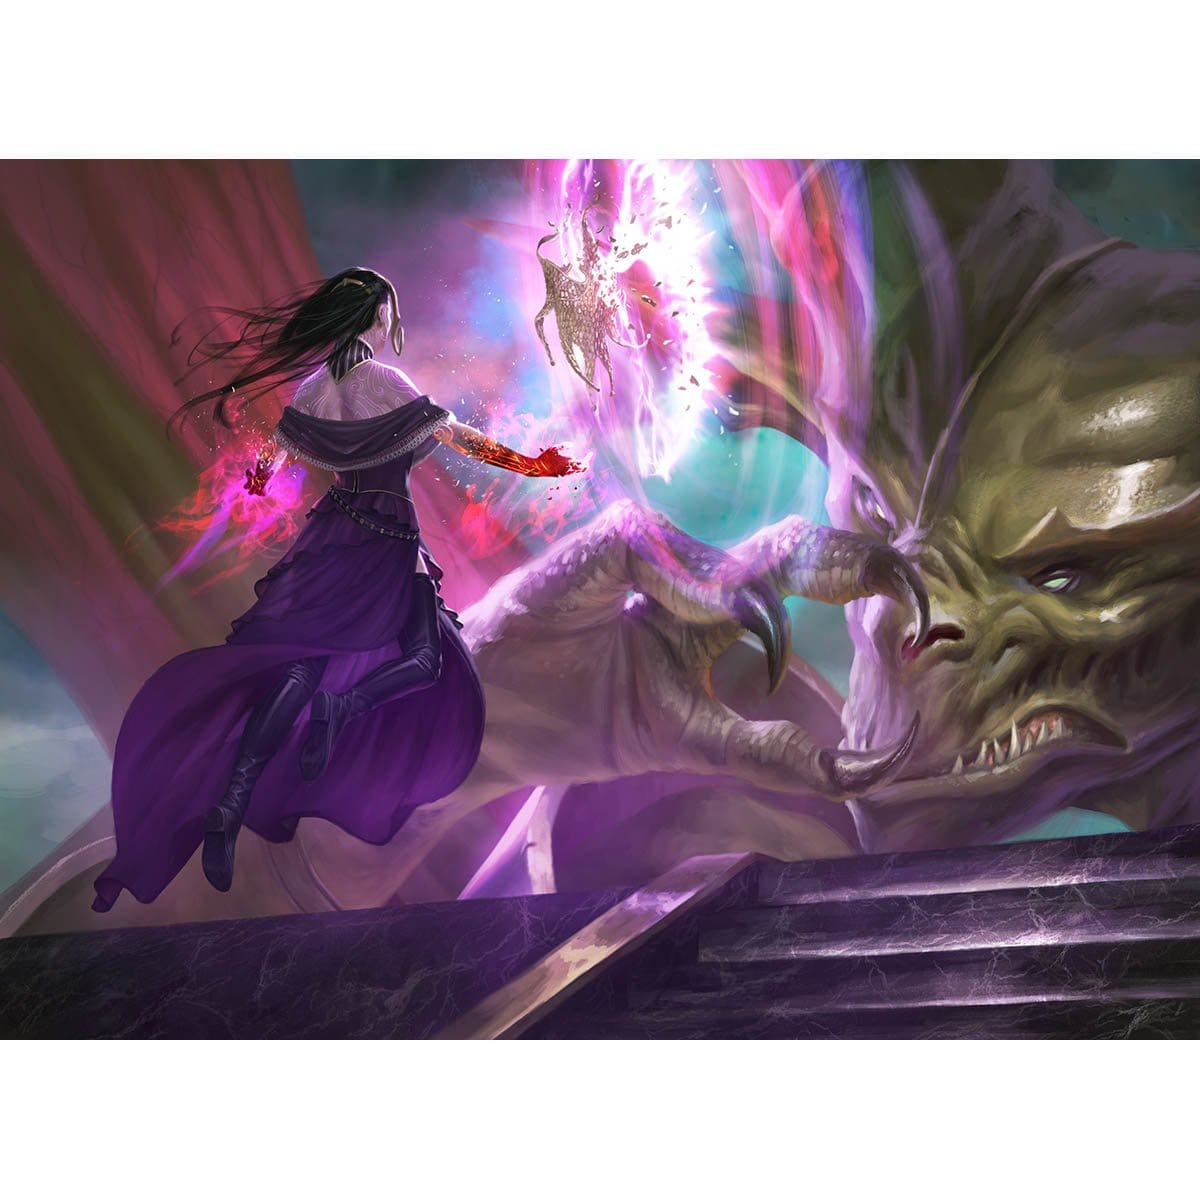 Finale of Eternity Print - Print - Original Magic Art - Accessories for Magic the Gathering and other card games